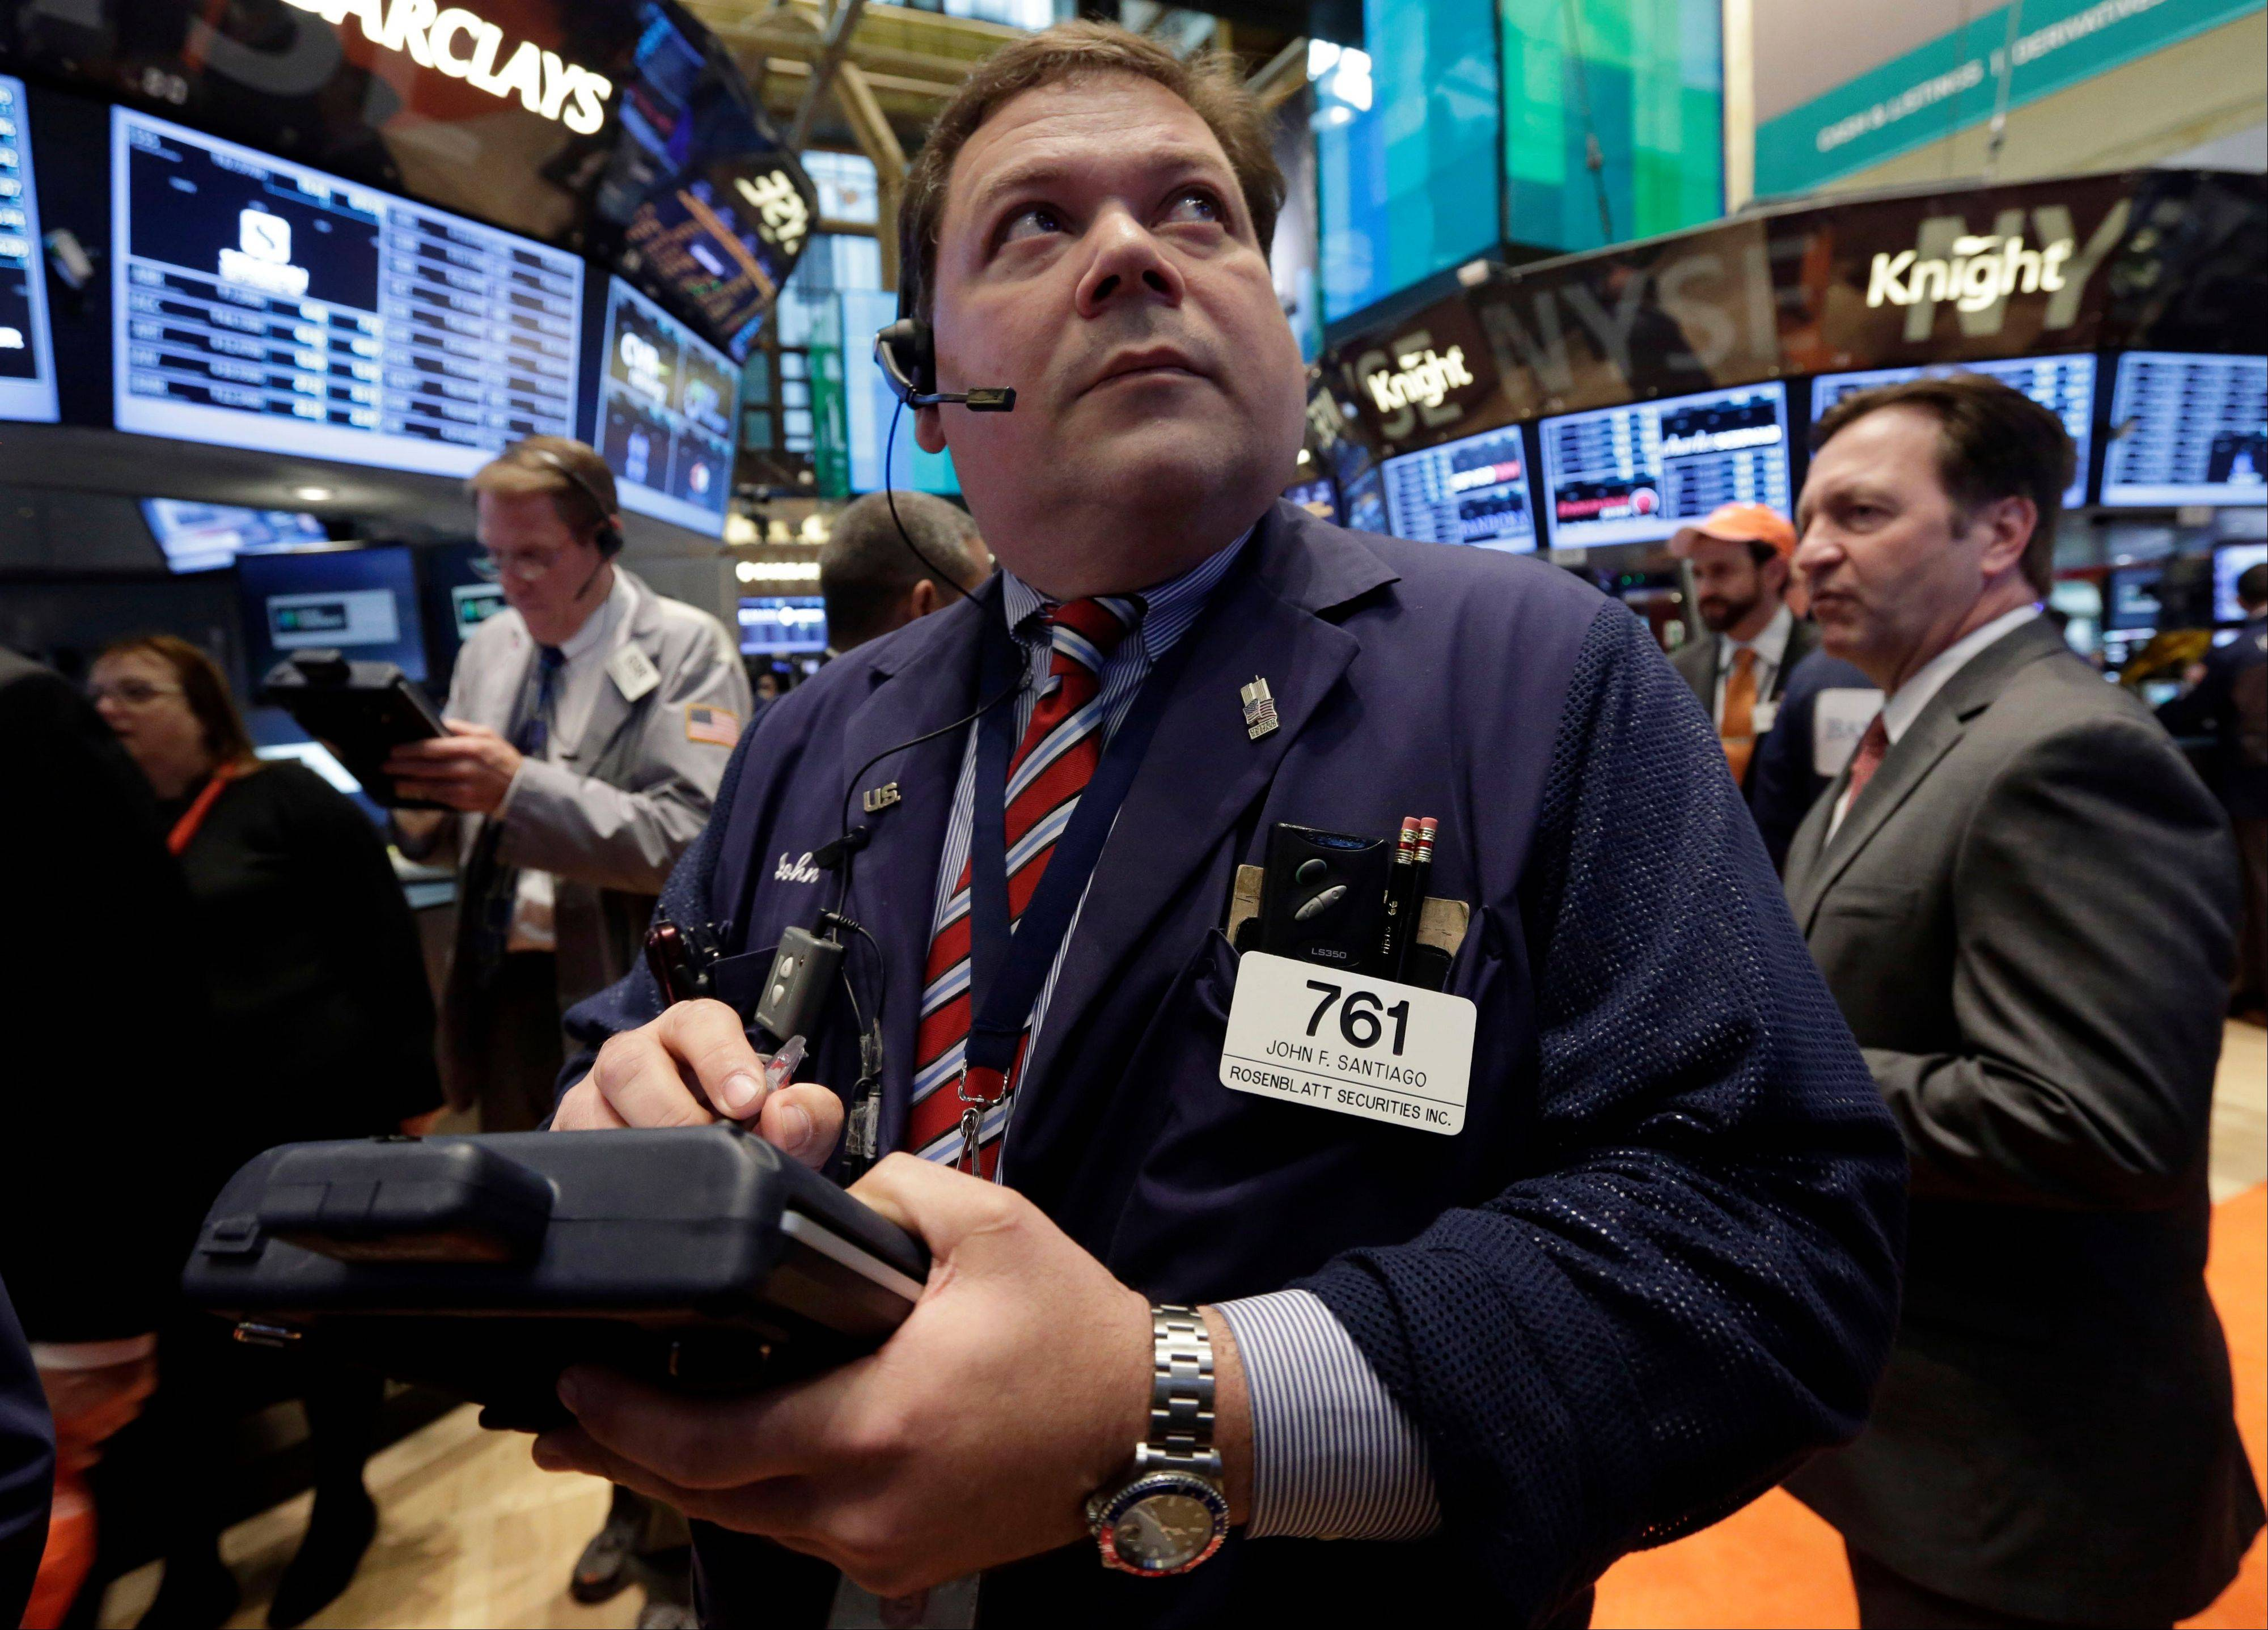 U.S. stocks fluctuated between gains and losses, after the Standard & Poor�s 500 Index climbed above 1,600 for the first time last week and data showed American employers added more workers than forecast in April.